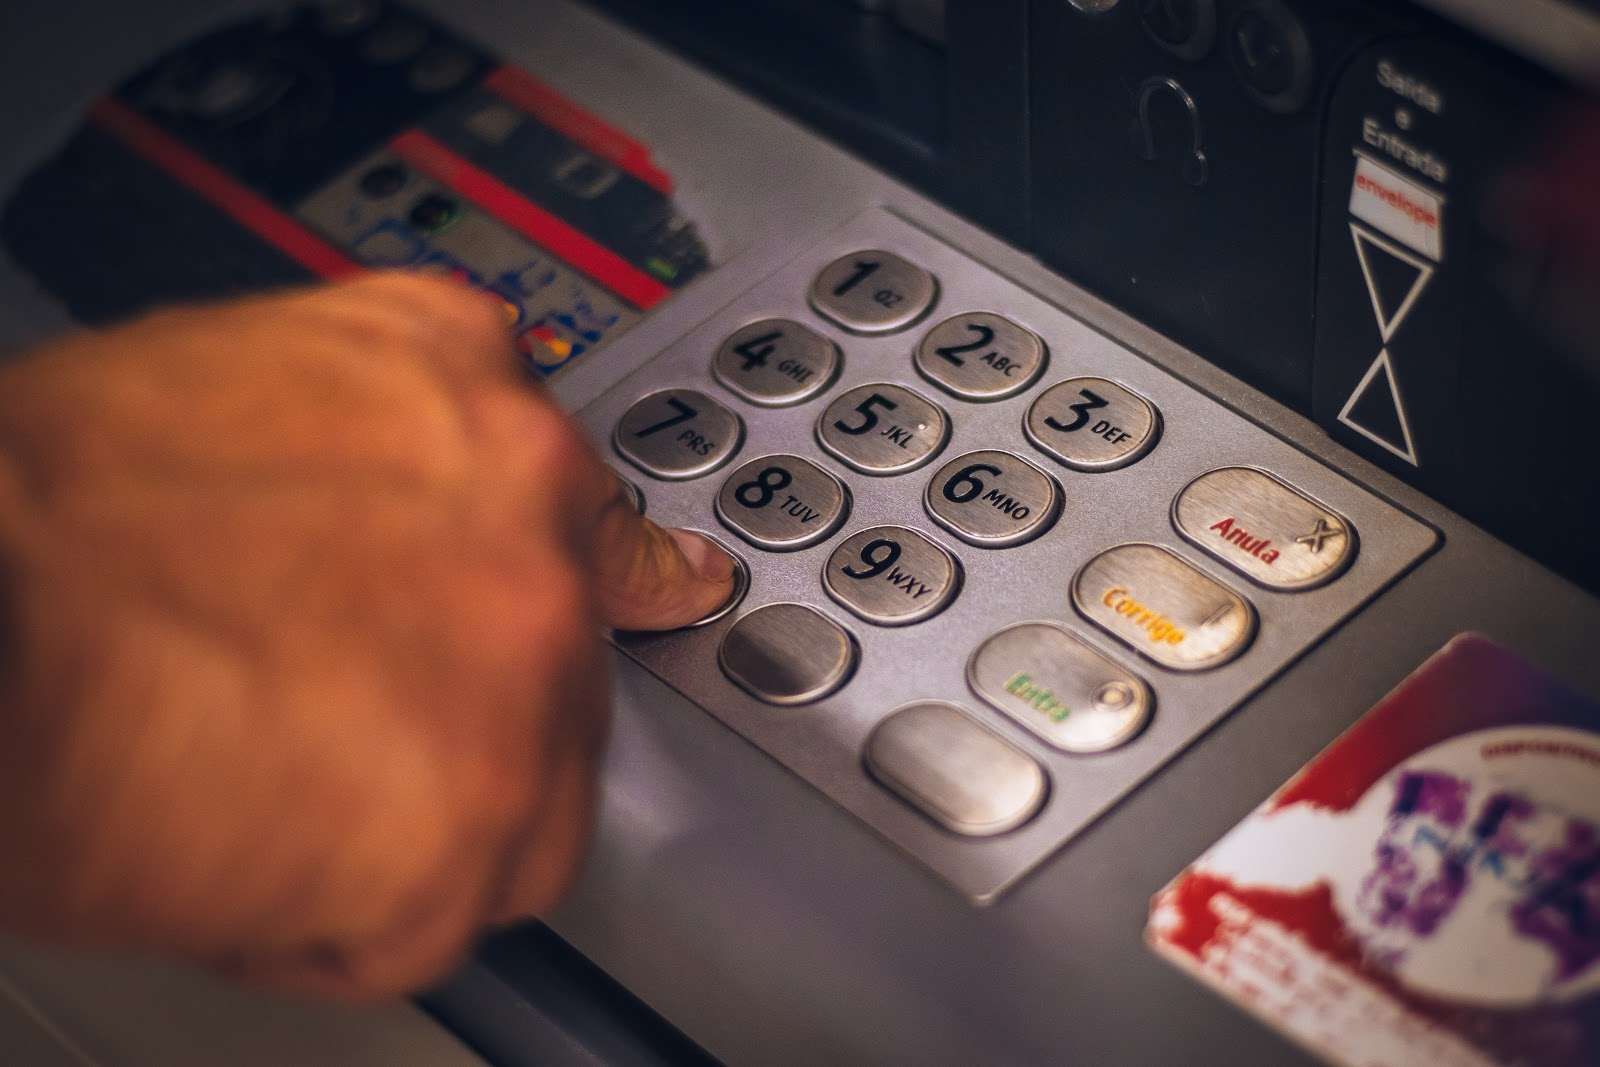 man pressing buttons on an ATM machine